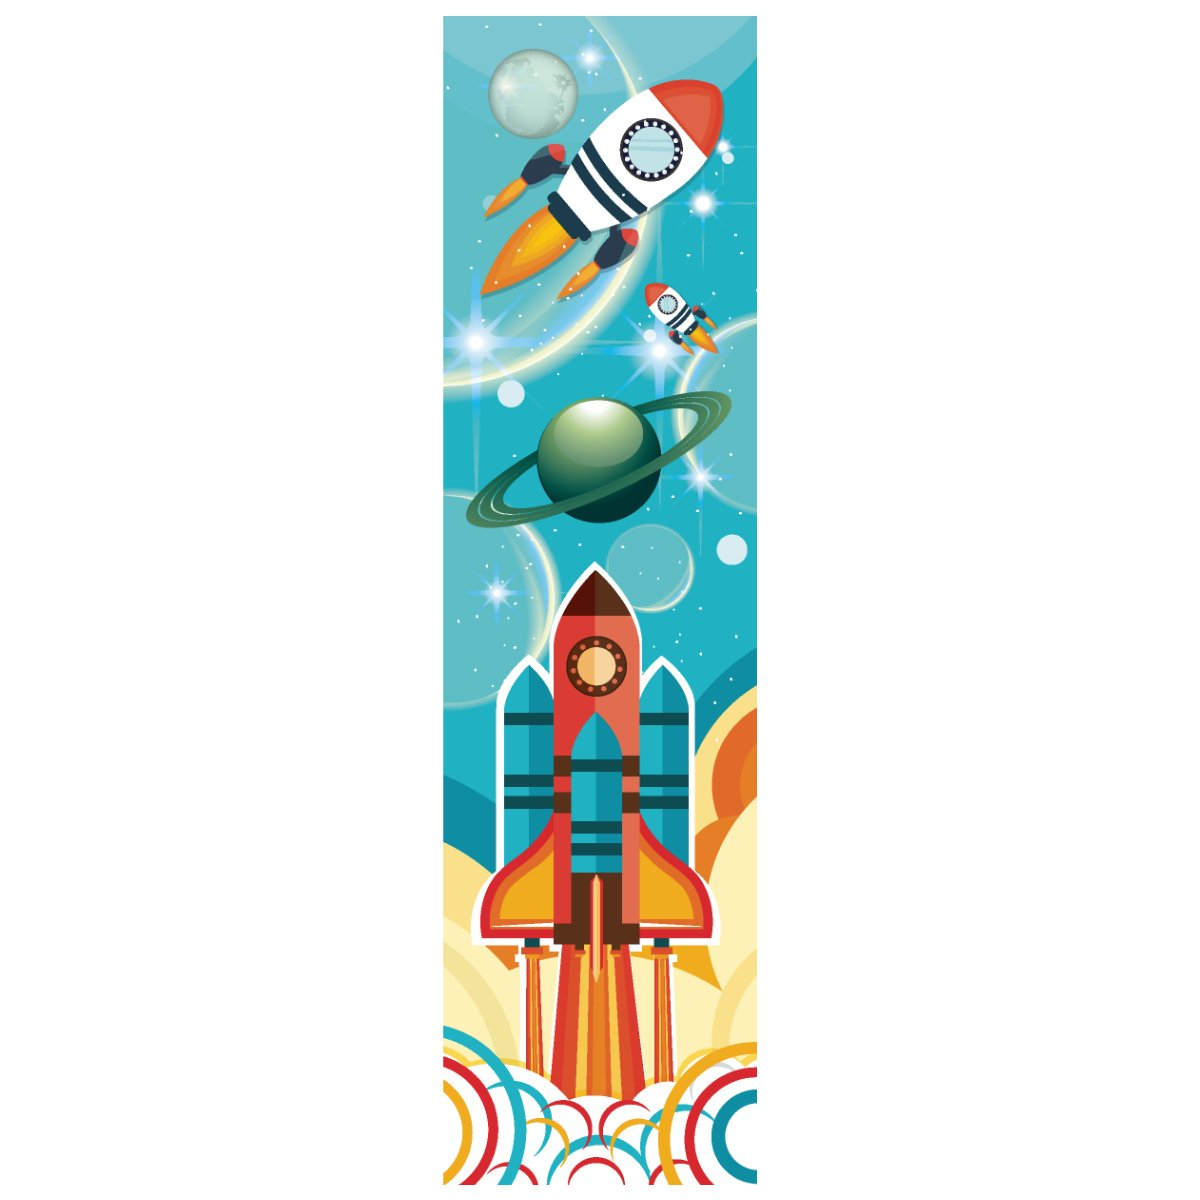 Astronaut Rocket Ship Bookmarks for Kids (24 Pack) - Space Shuttle Astronomy Design - Rocket Ship Party Supplies - School Reading Incentives, Student Prizes, Boys Party Favors